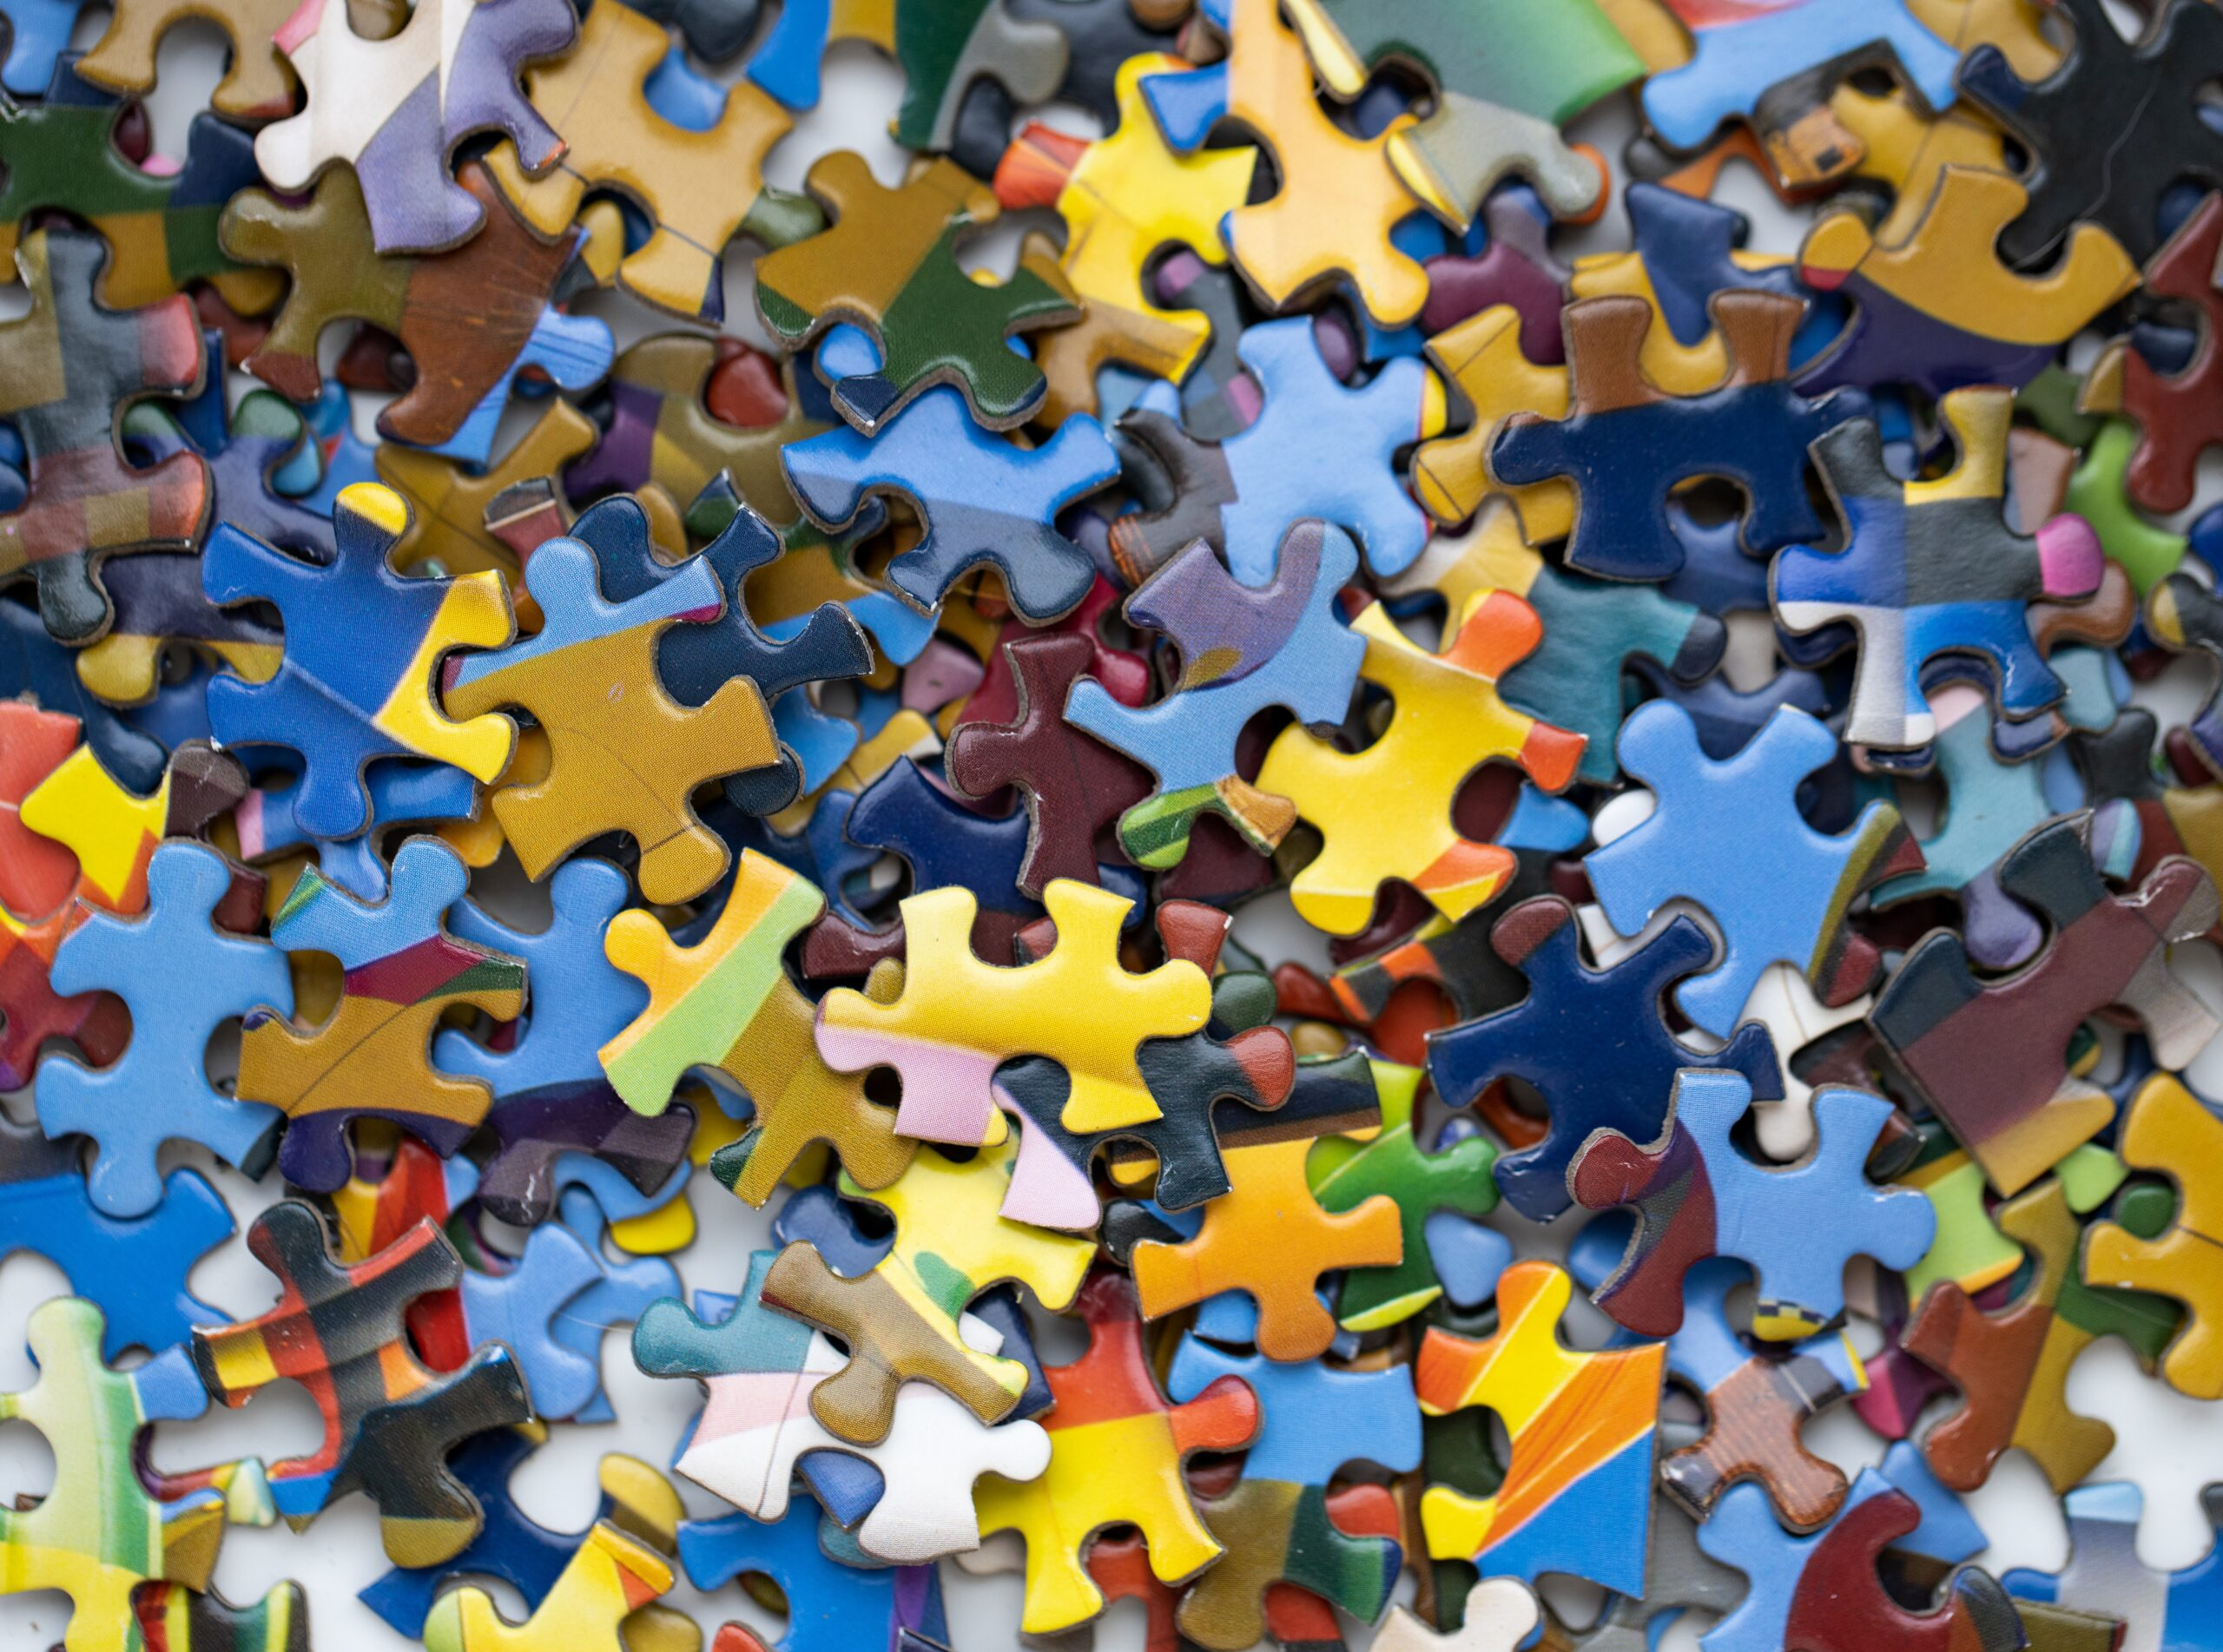 Vocabulary as Puzzle Pieces